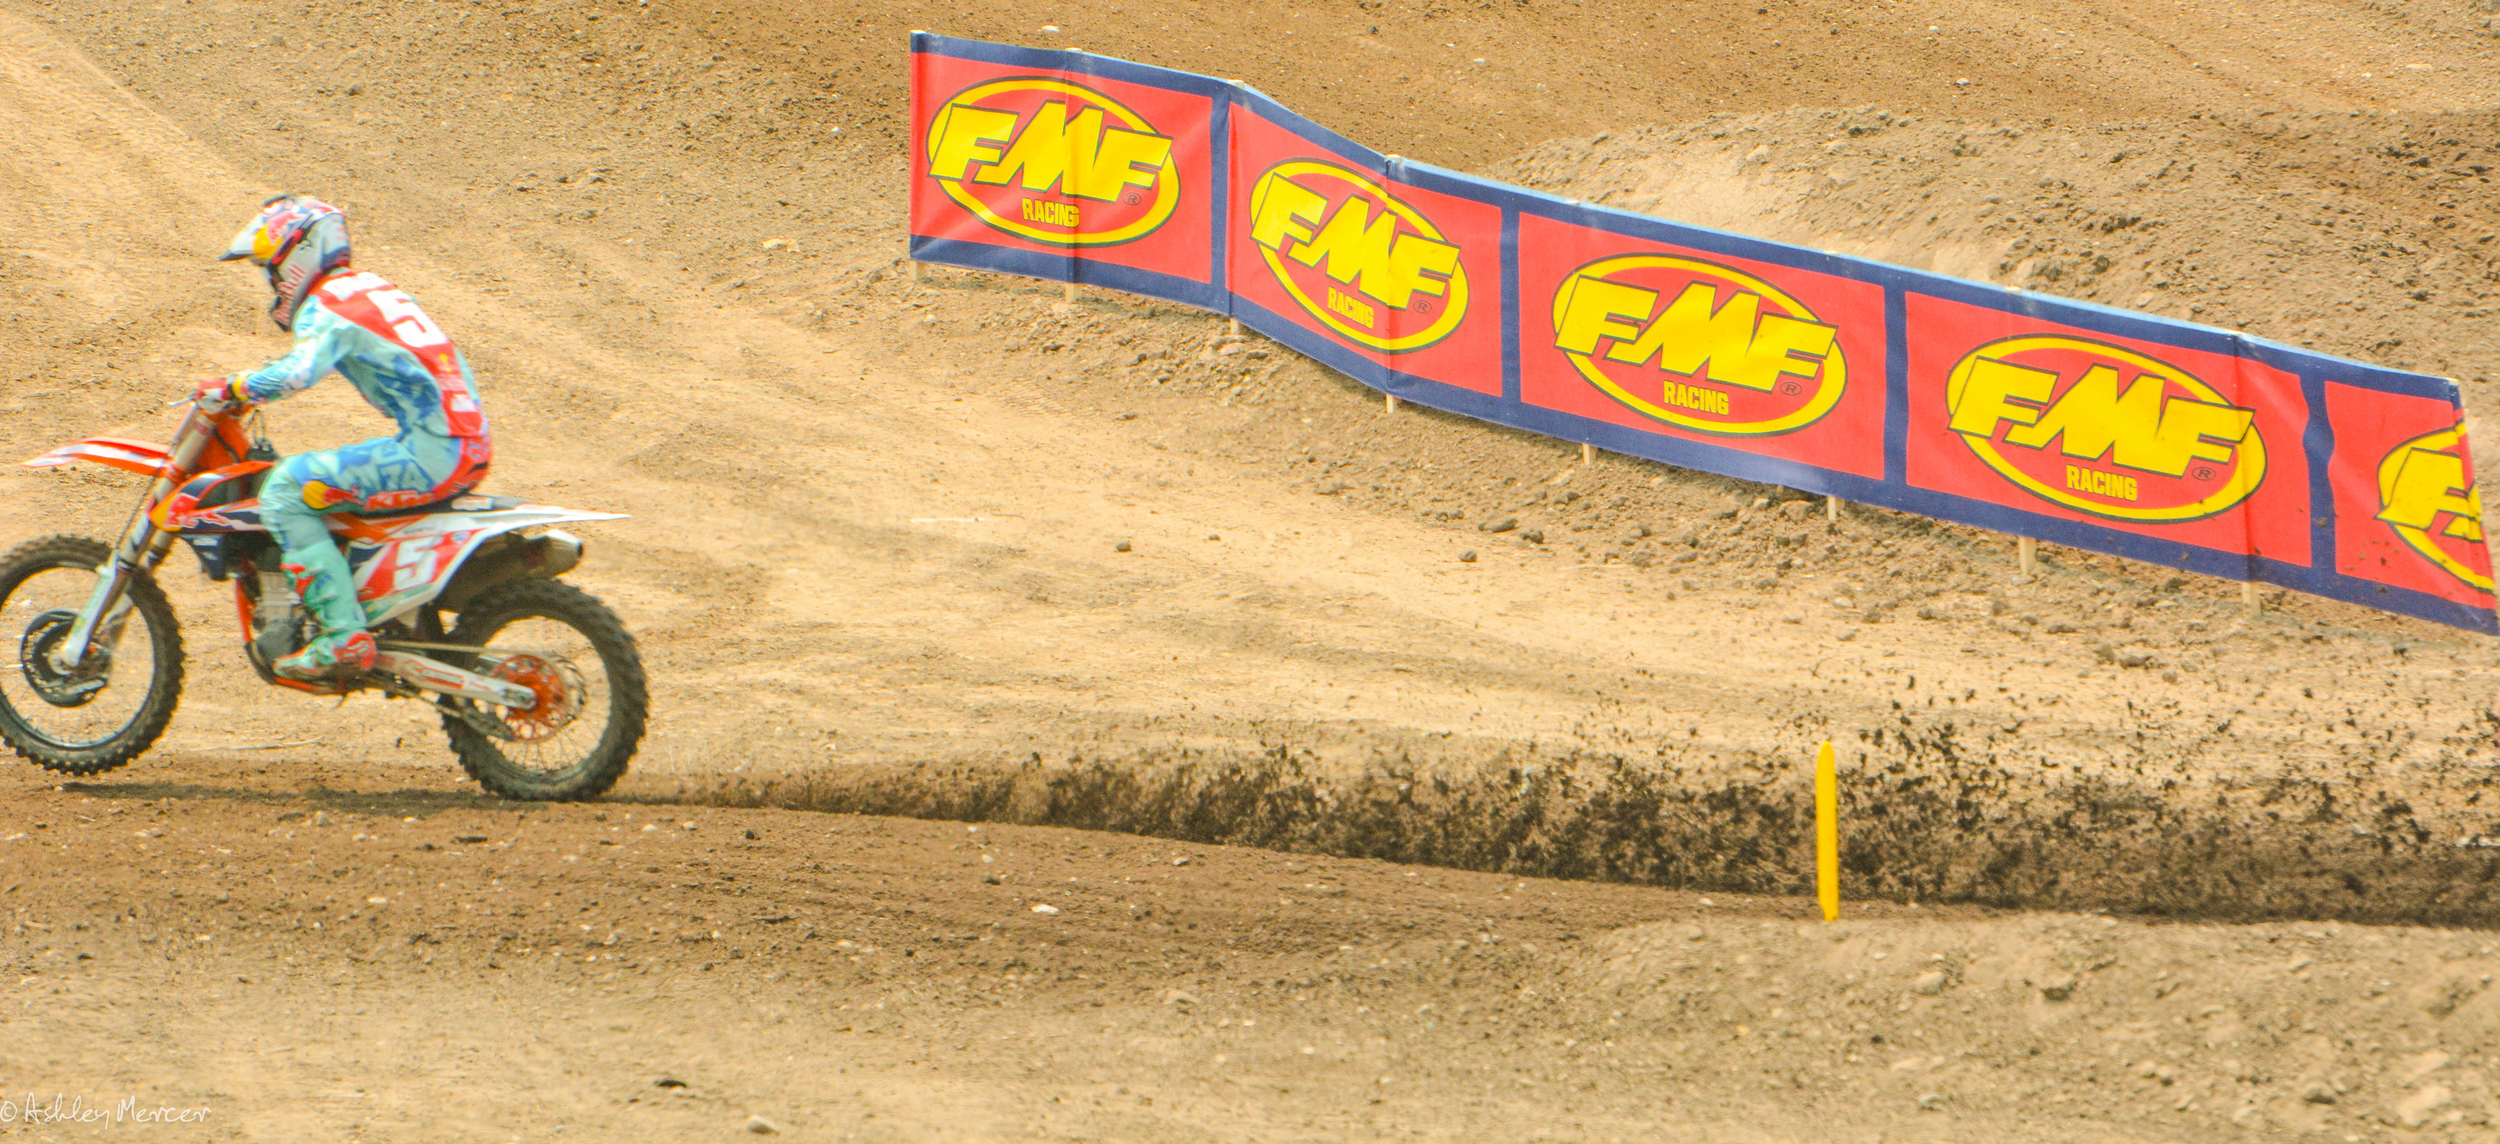 red bud mx july 2015-27.jpg